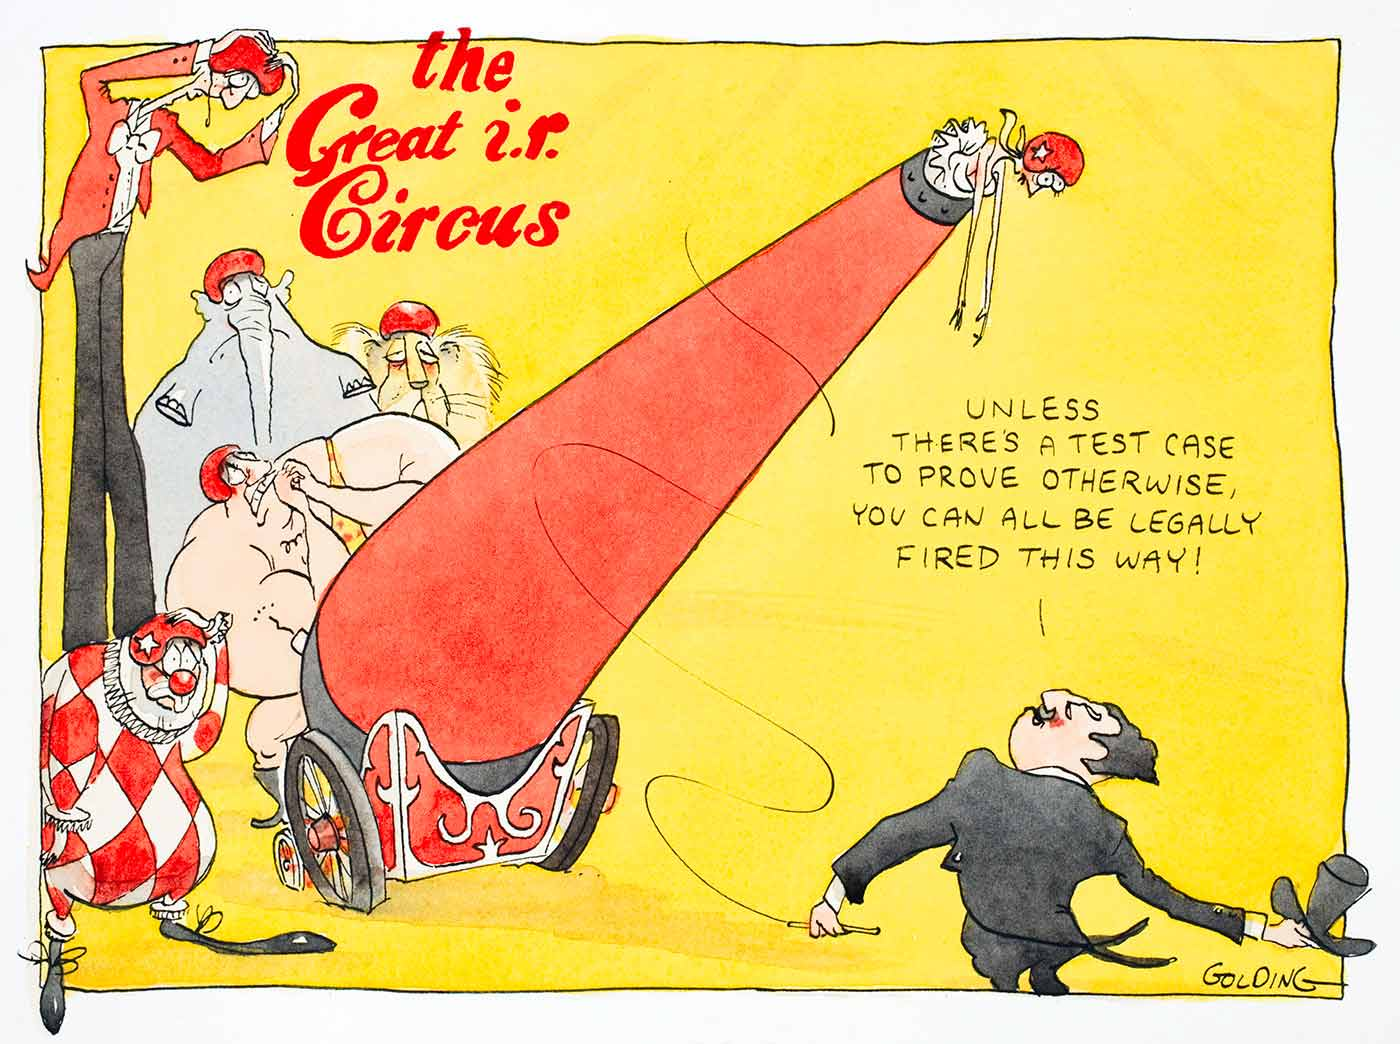 """Cartoon of a variety of circus performers standing around a cannon with a woman in it. The ring master tells them, """"Unless there's a test case to prove otherwise, you can all be legally fired this way!"""" - click to view larger image"""